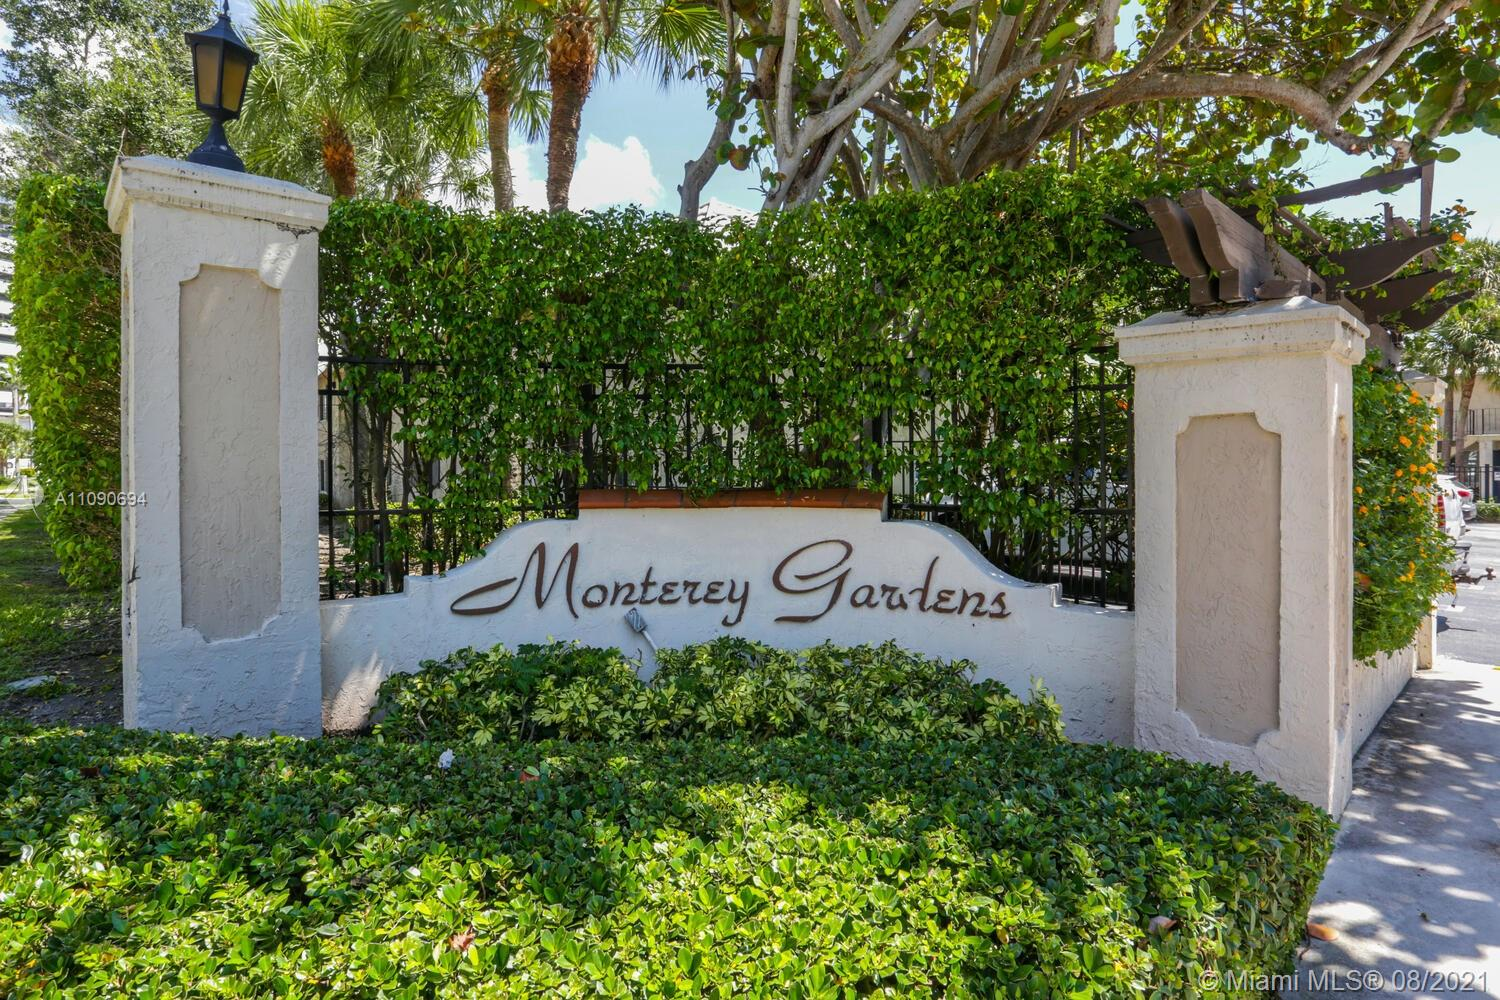 Recently renovated unit using neutral and tasteful finishes and appointments, located within Monterey Gardens of Pinecrest, one of the area's best kept secrets.  Central located, this community offers a Melrose Place type of ambiance, quaint and manicured.  The renovations included a new kitchen, flooring, bathrooms, moldings, new air condition unit, and the sought after washer and dryer in the unit and top of the line fixtures and appliances.  It is bright, airy and surprisingly spacious.  This will not last.